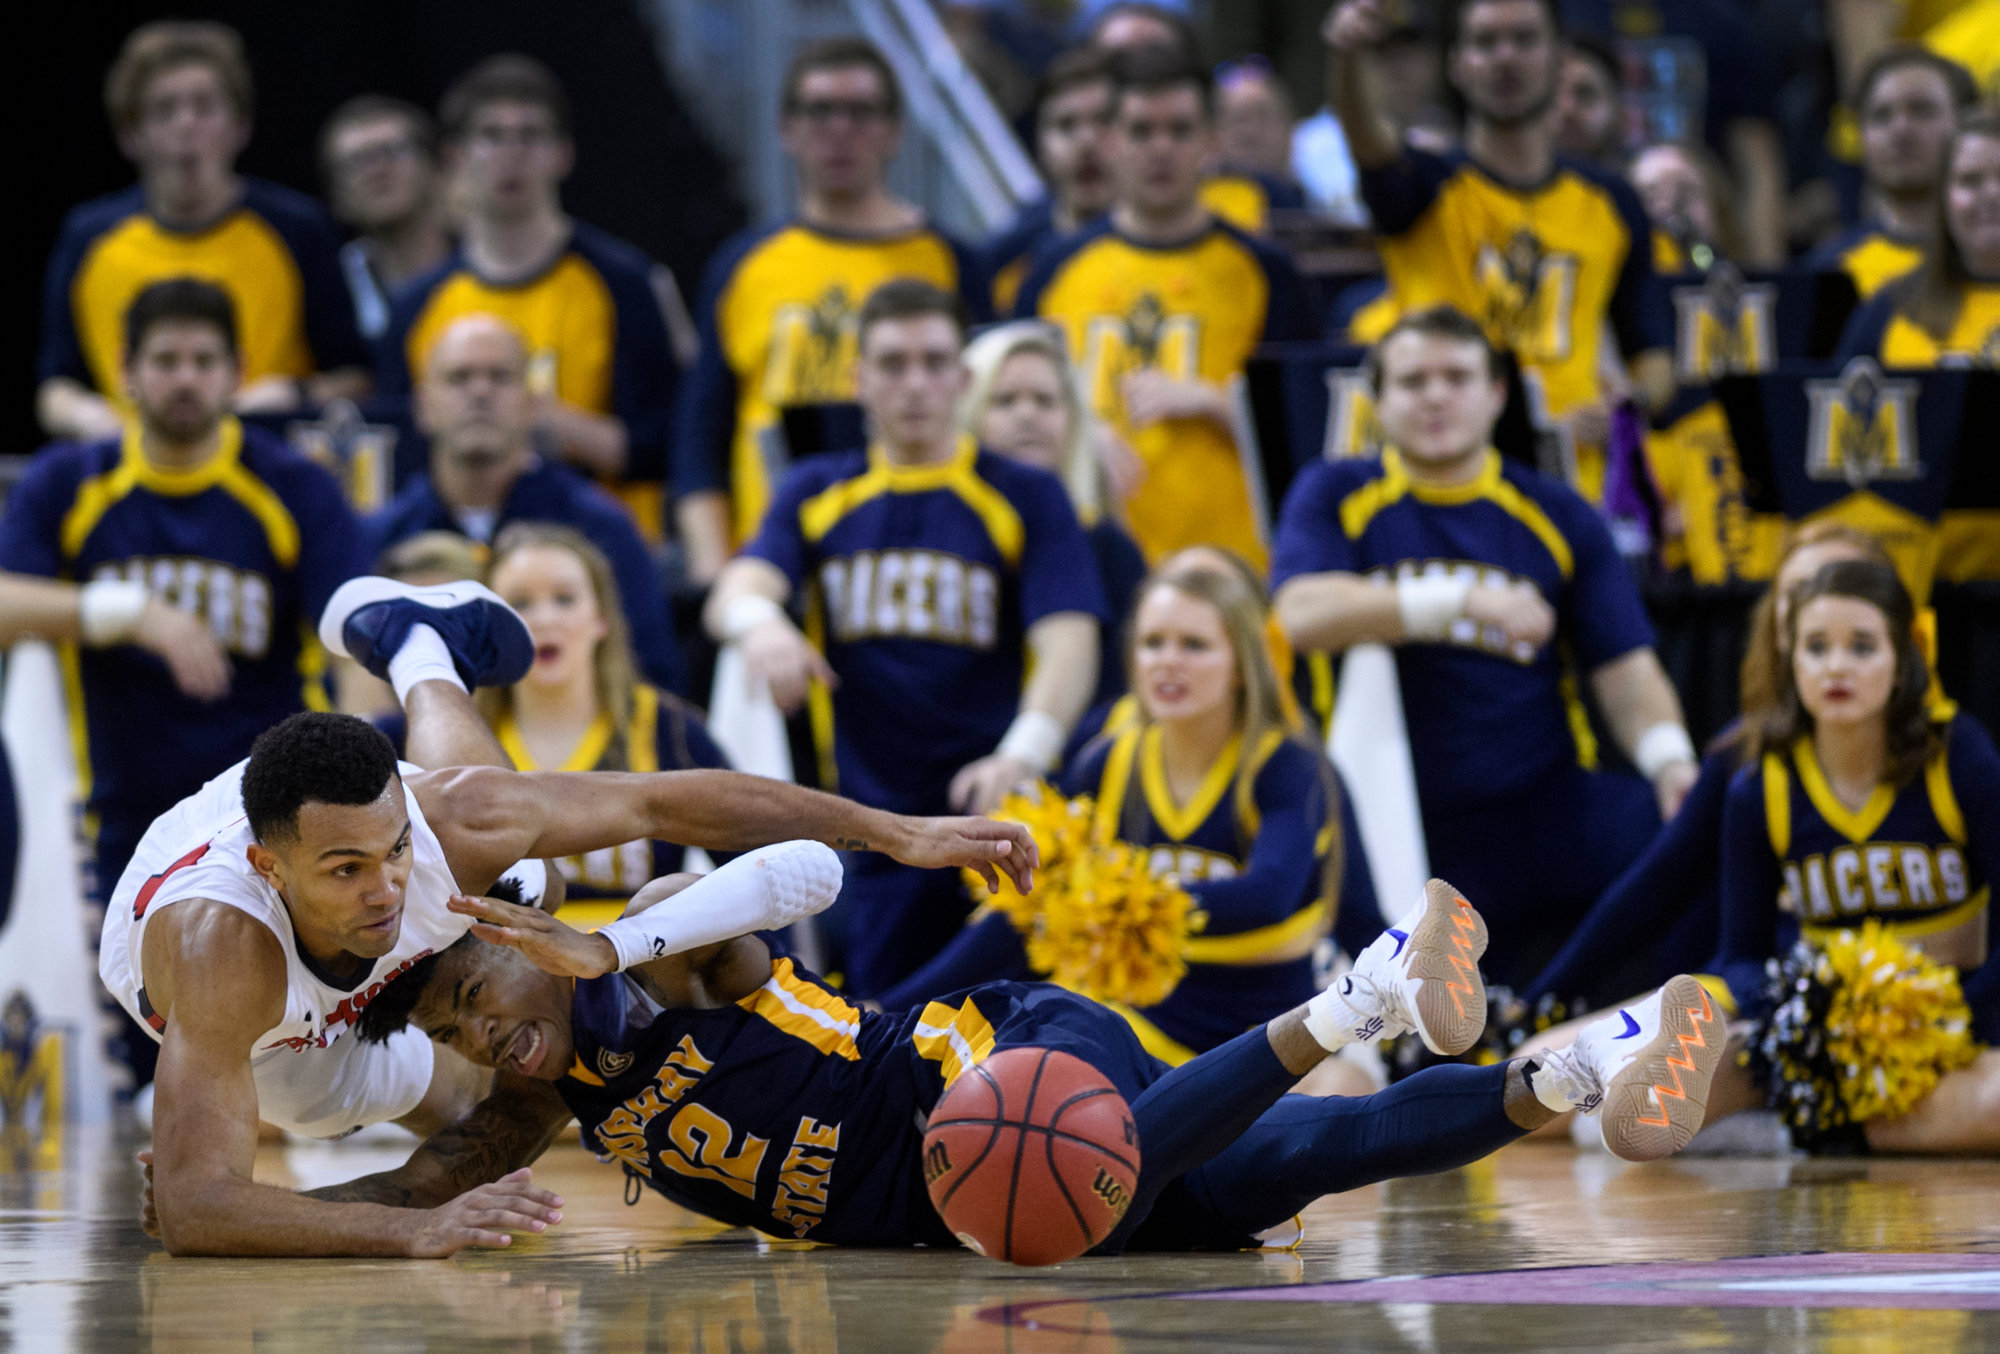 Belmont's Michael Benkert (24) and Murray State's Ja Morant (12) fight for a loose ball during the second half of the Racers' victory in the Ohio Valley Conference tournament championship game on Saturday in Evansville, Indiana.